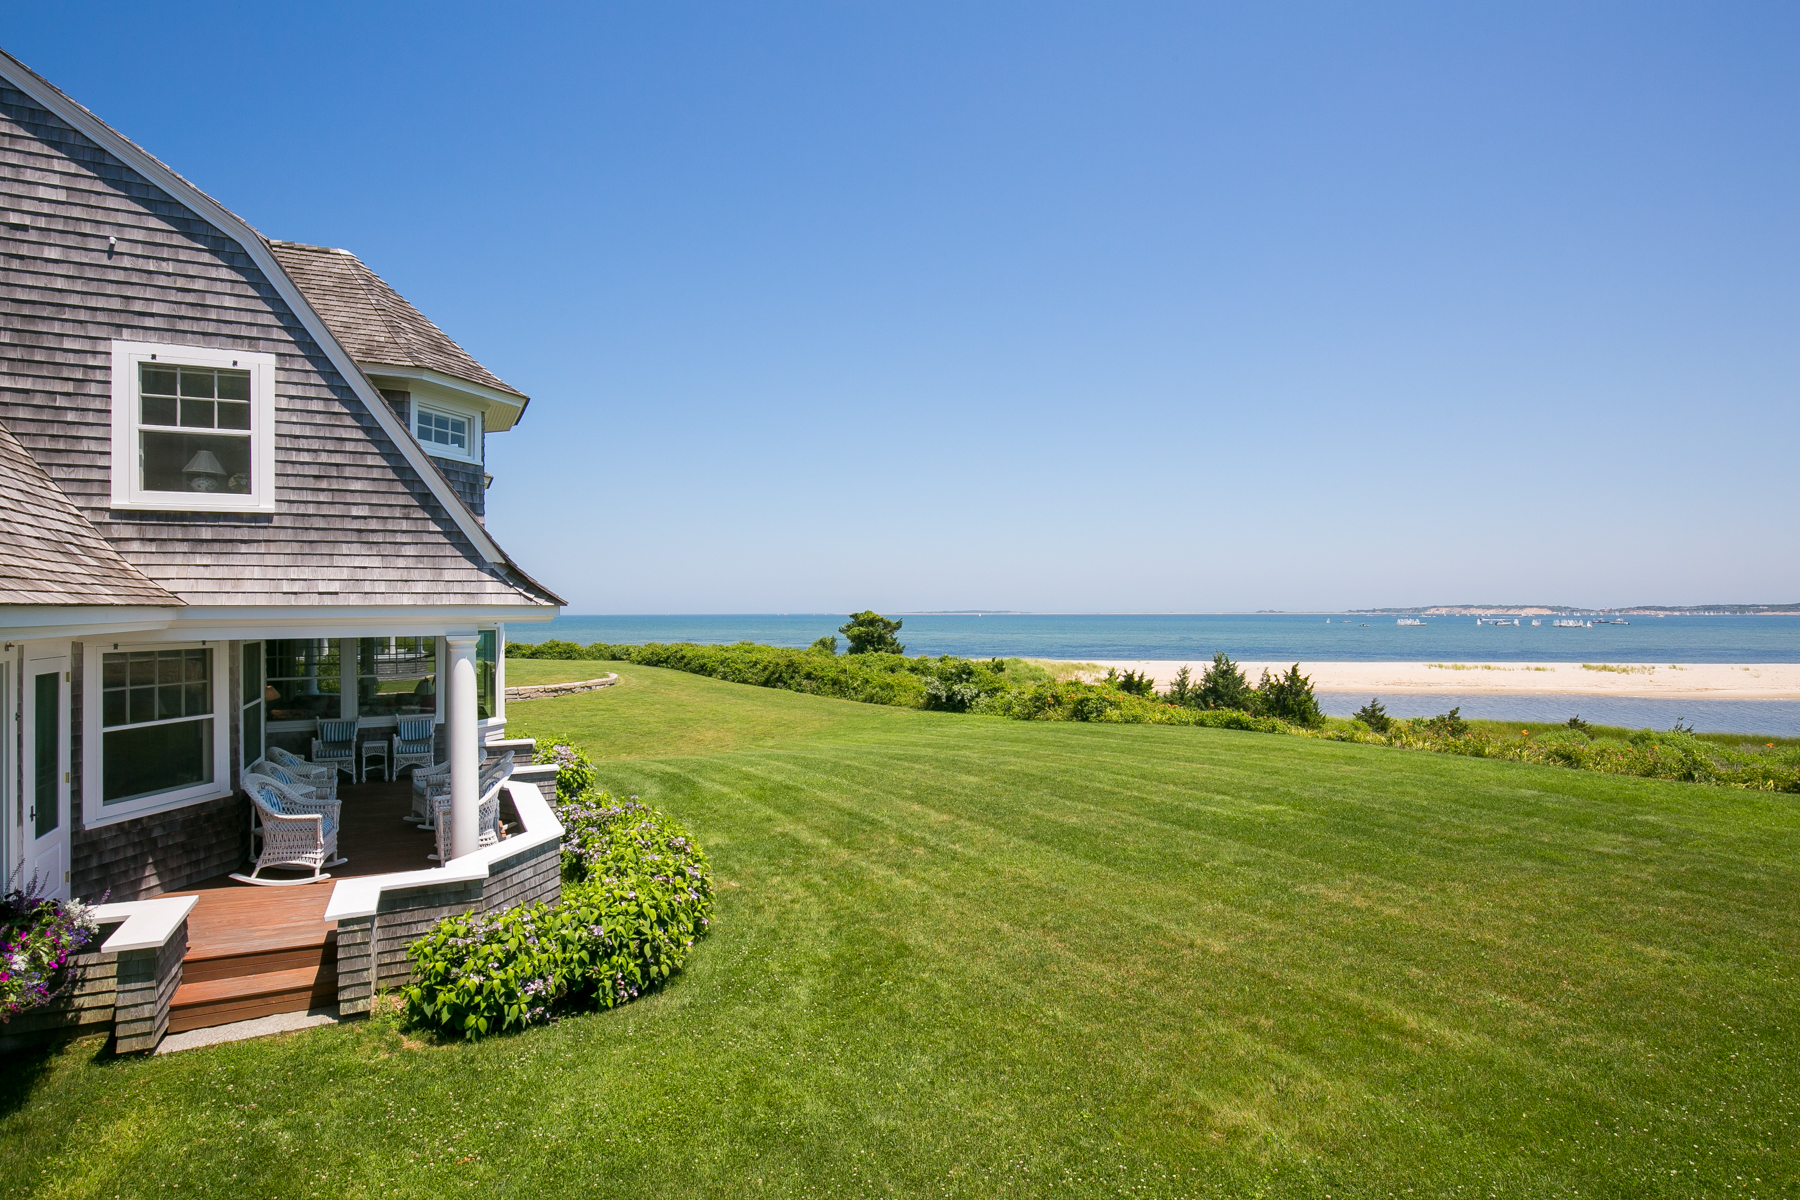 Casa Unifamiliar por un Venta en Edgartown Harbor Waterfront Estate 7 Starbuck Neck Road Edgartown, Massachusetts, 02539 Estados Unidos